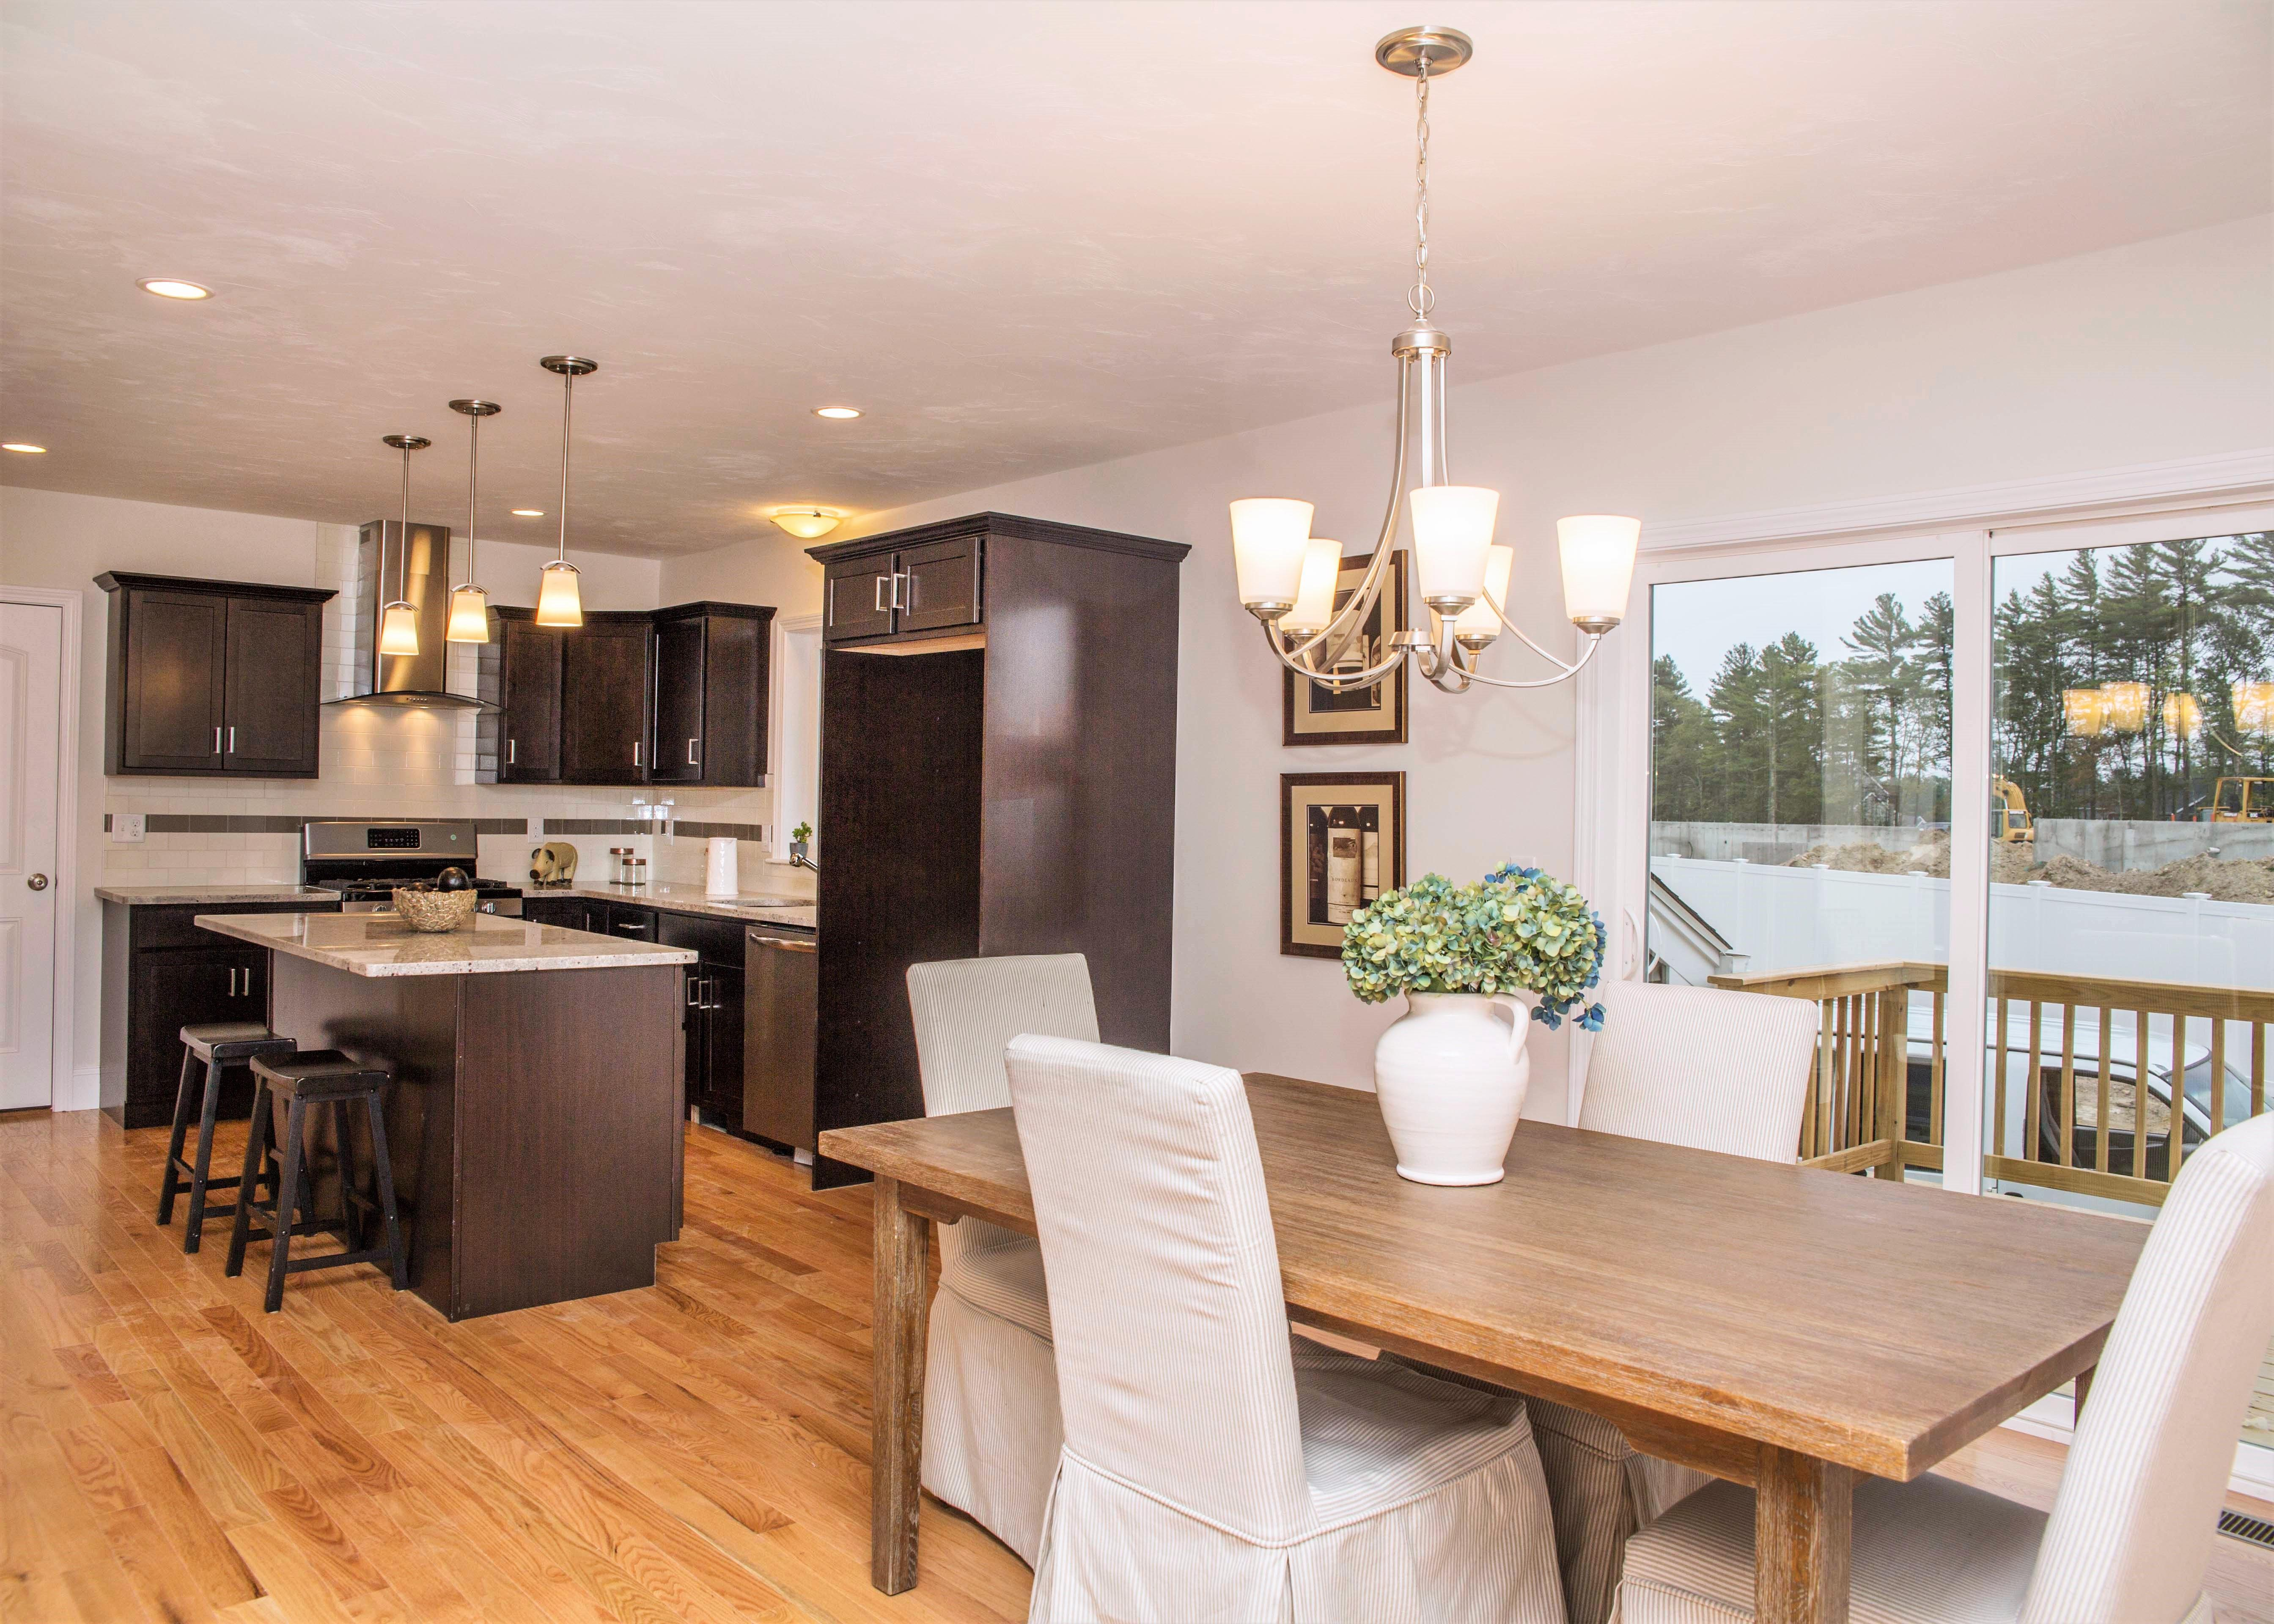 Kitchen featured in The Ashland By Stonebridge Homes Inc. in Boston, MA